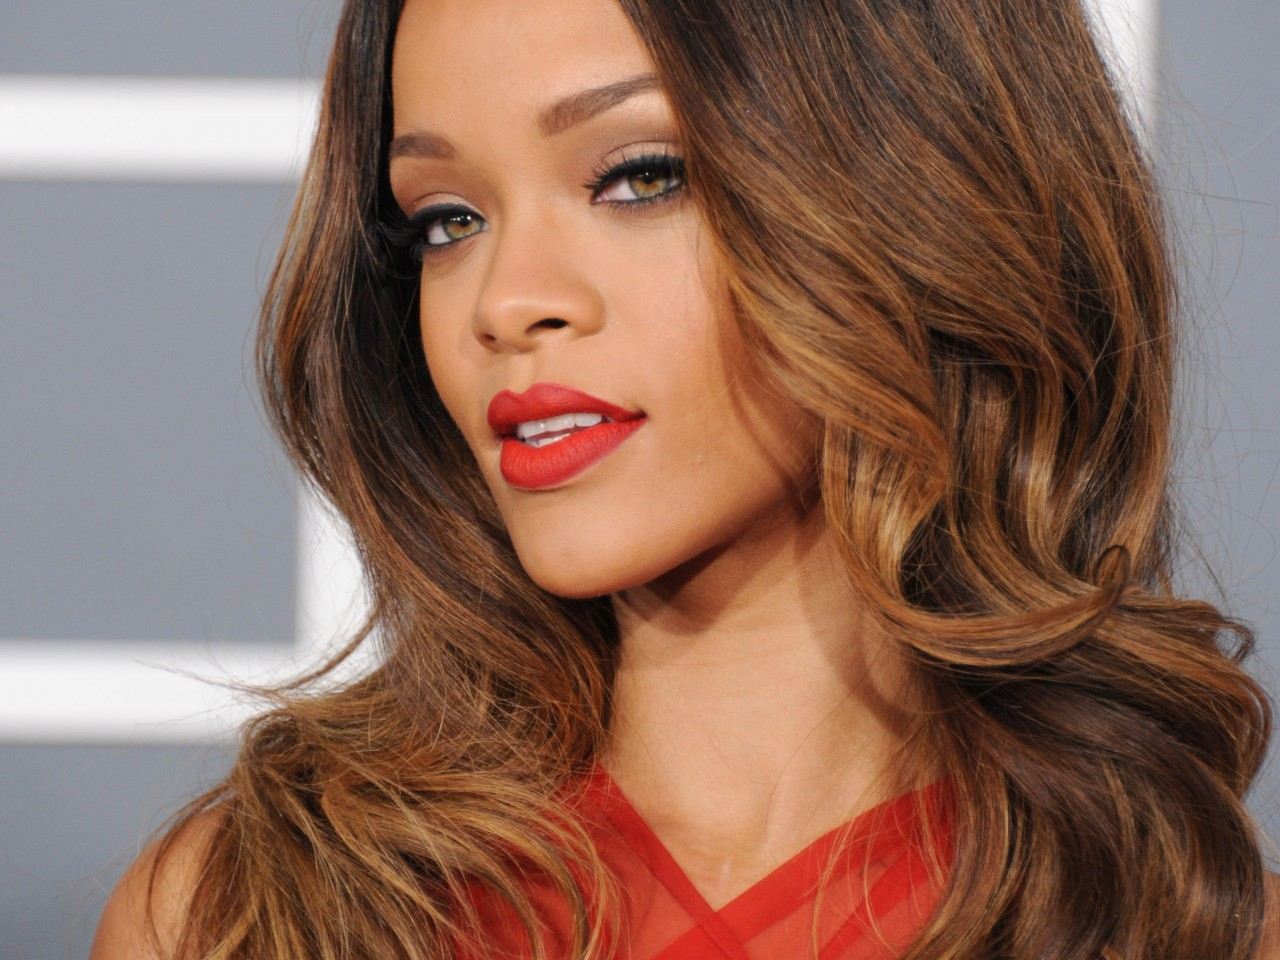 Rihanna's debut studio album, Music of the Sun (2005), peaked at number ten on the Billboard 200 chart and features the Billboard Hot 100 top three hit ...